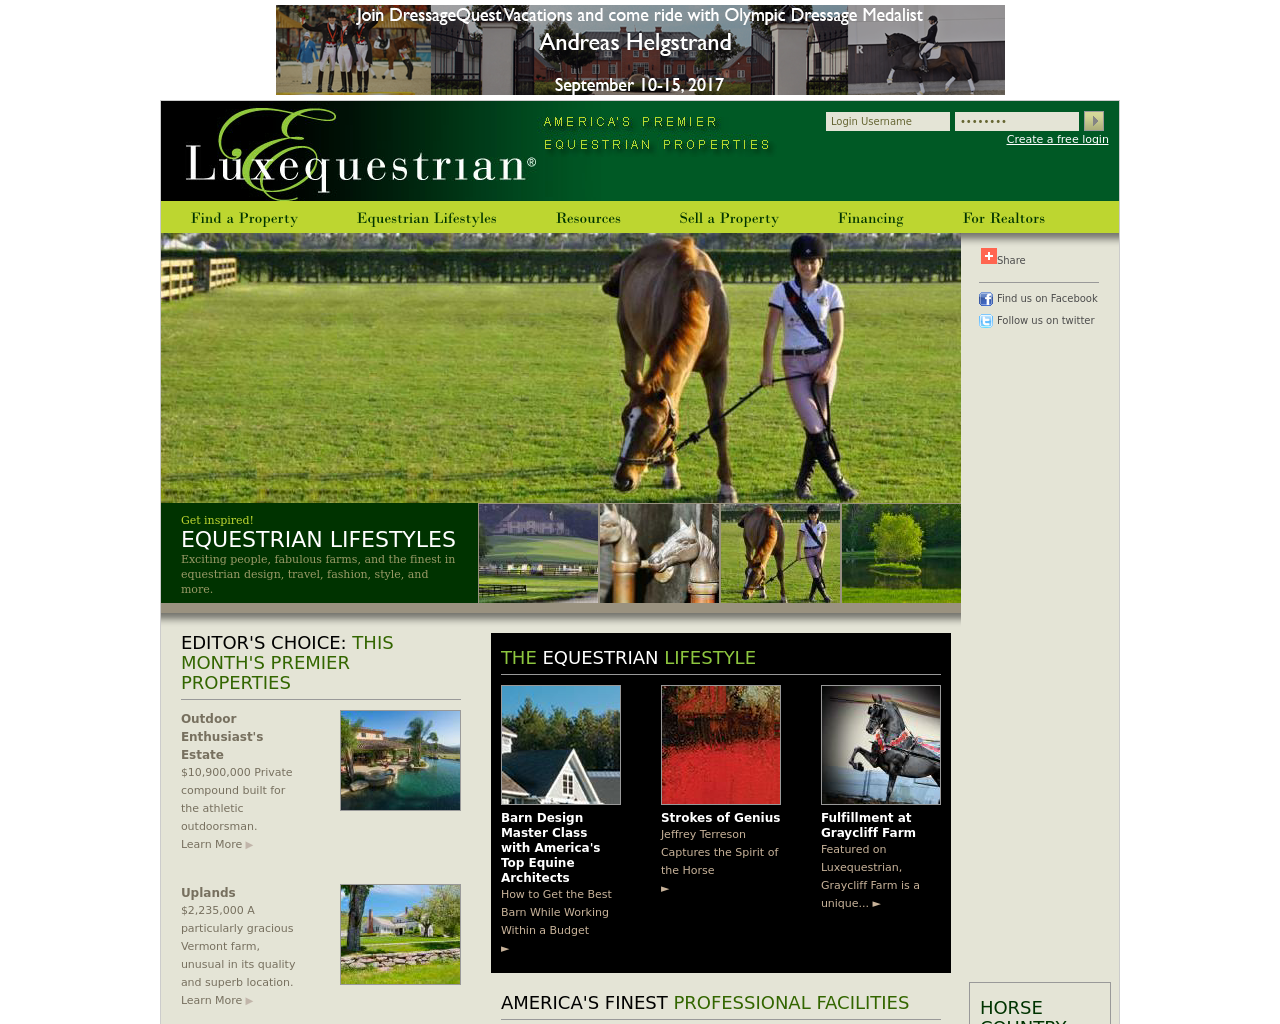 Luxequestrian-Advertising-Reviews-Pricing